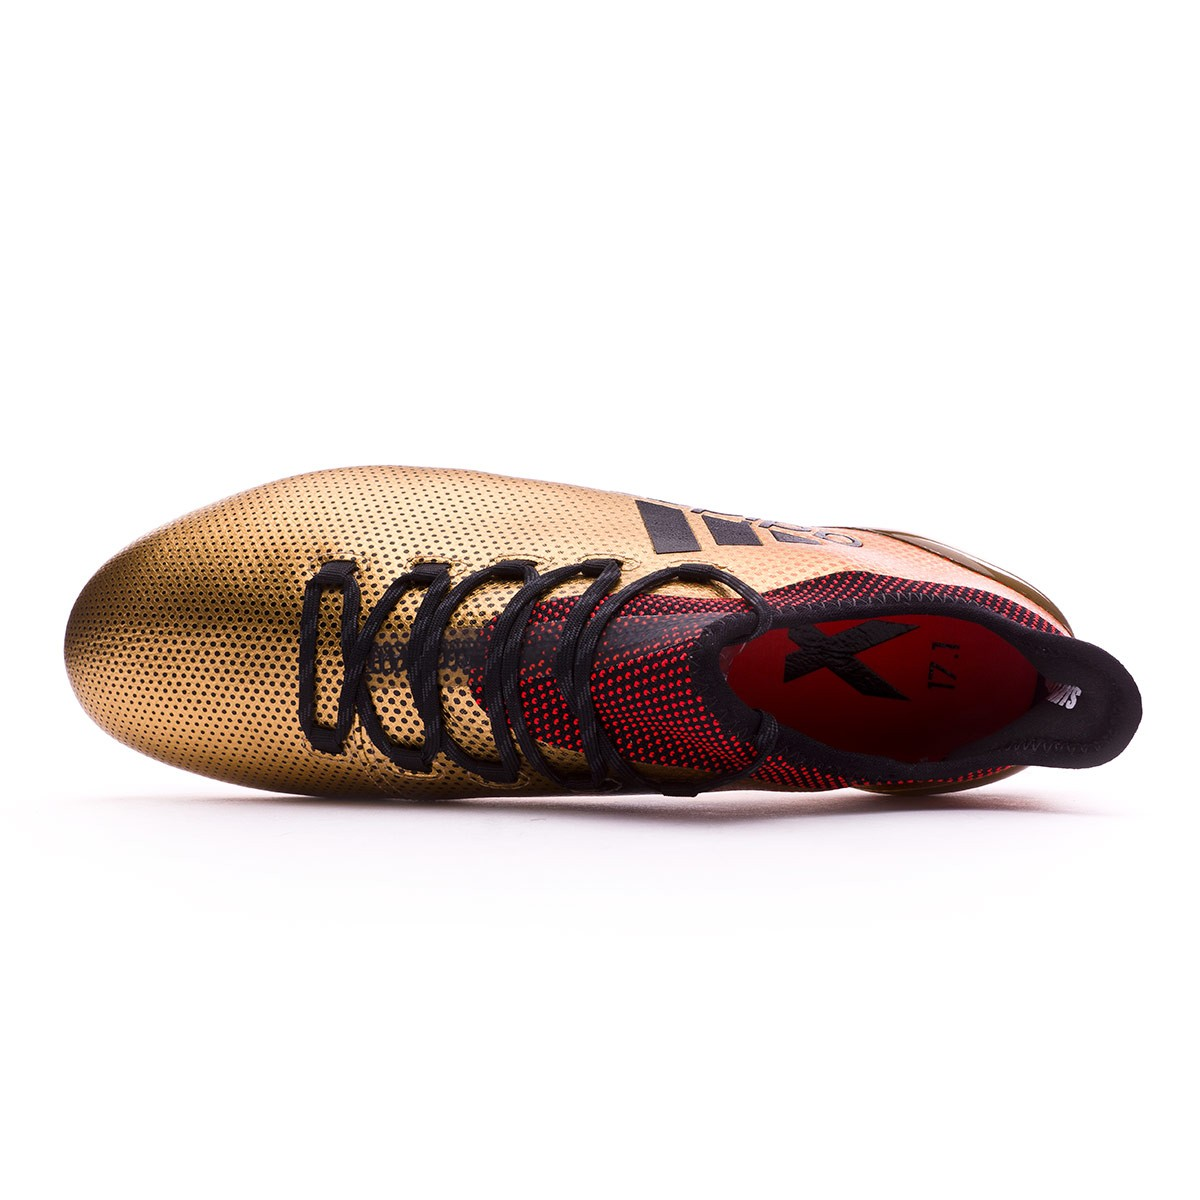 a10971be9bba ... SG Tactile gold metallic-Core black-Solar red. CATEGORY. Football boots  · adidas football boots